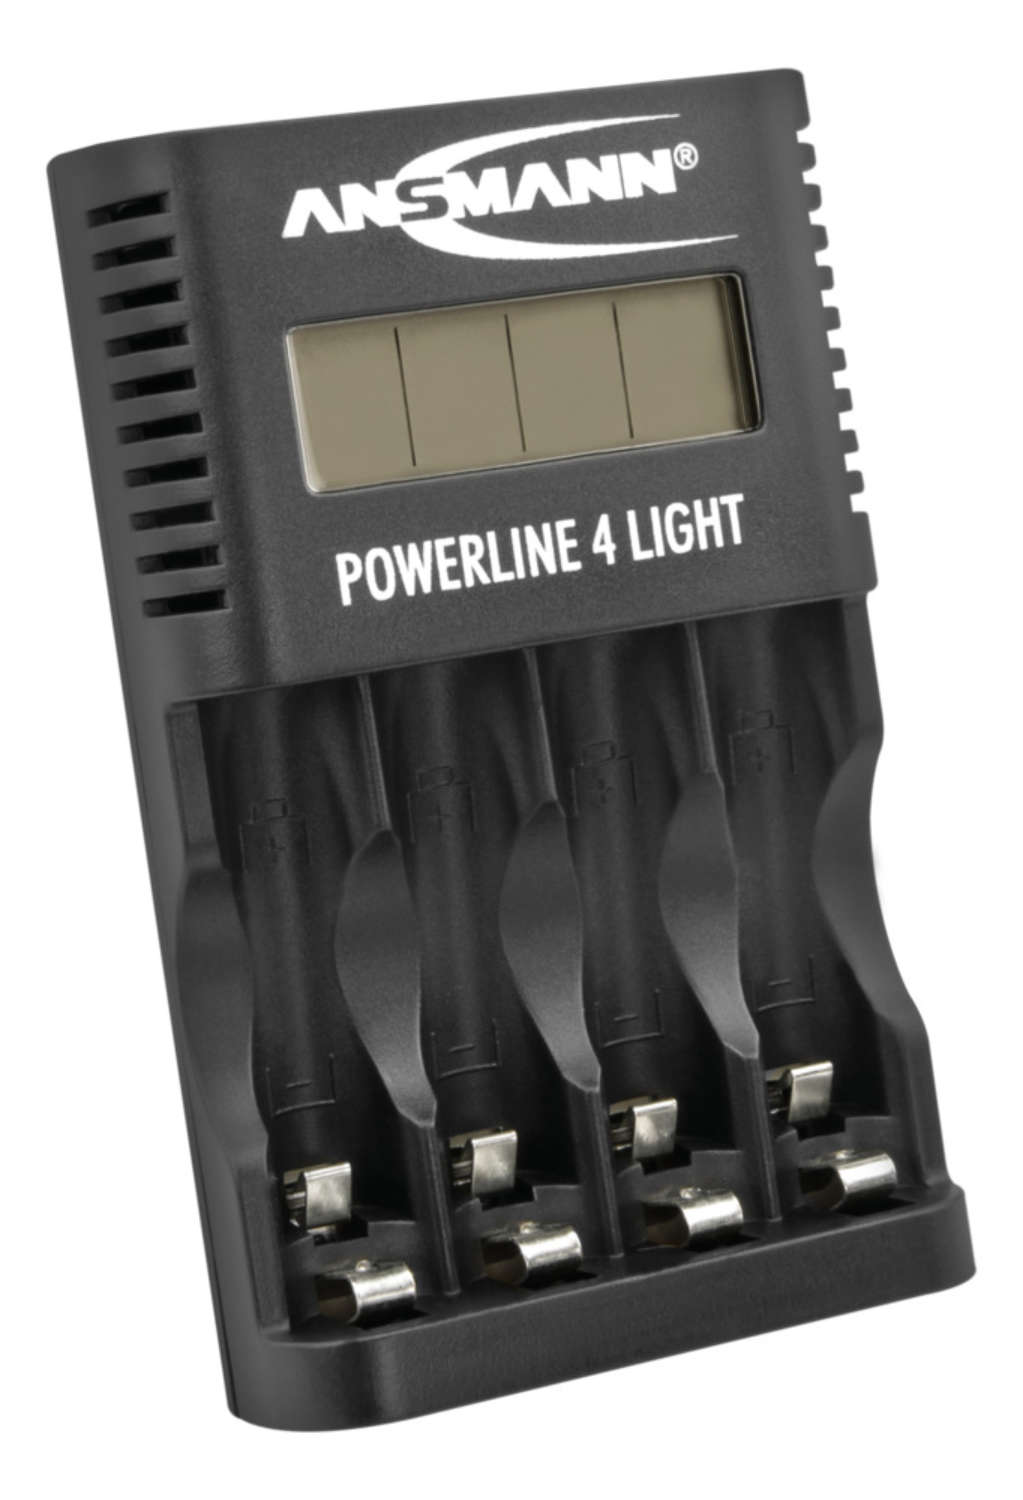 Powerline 4 Light